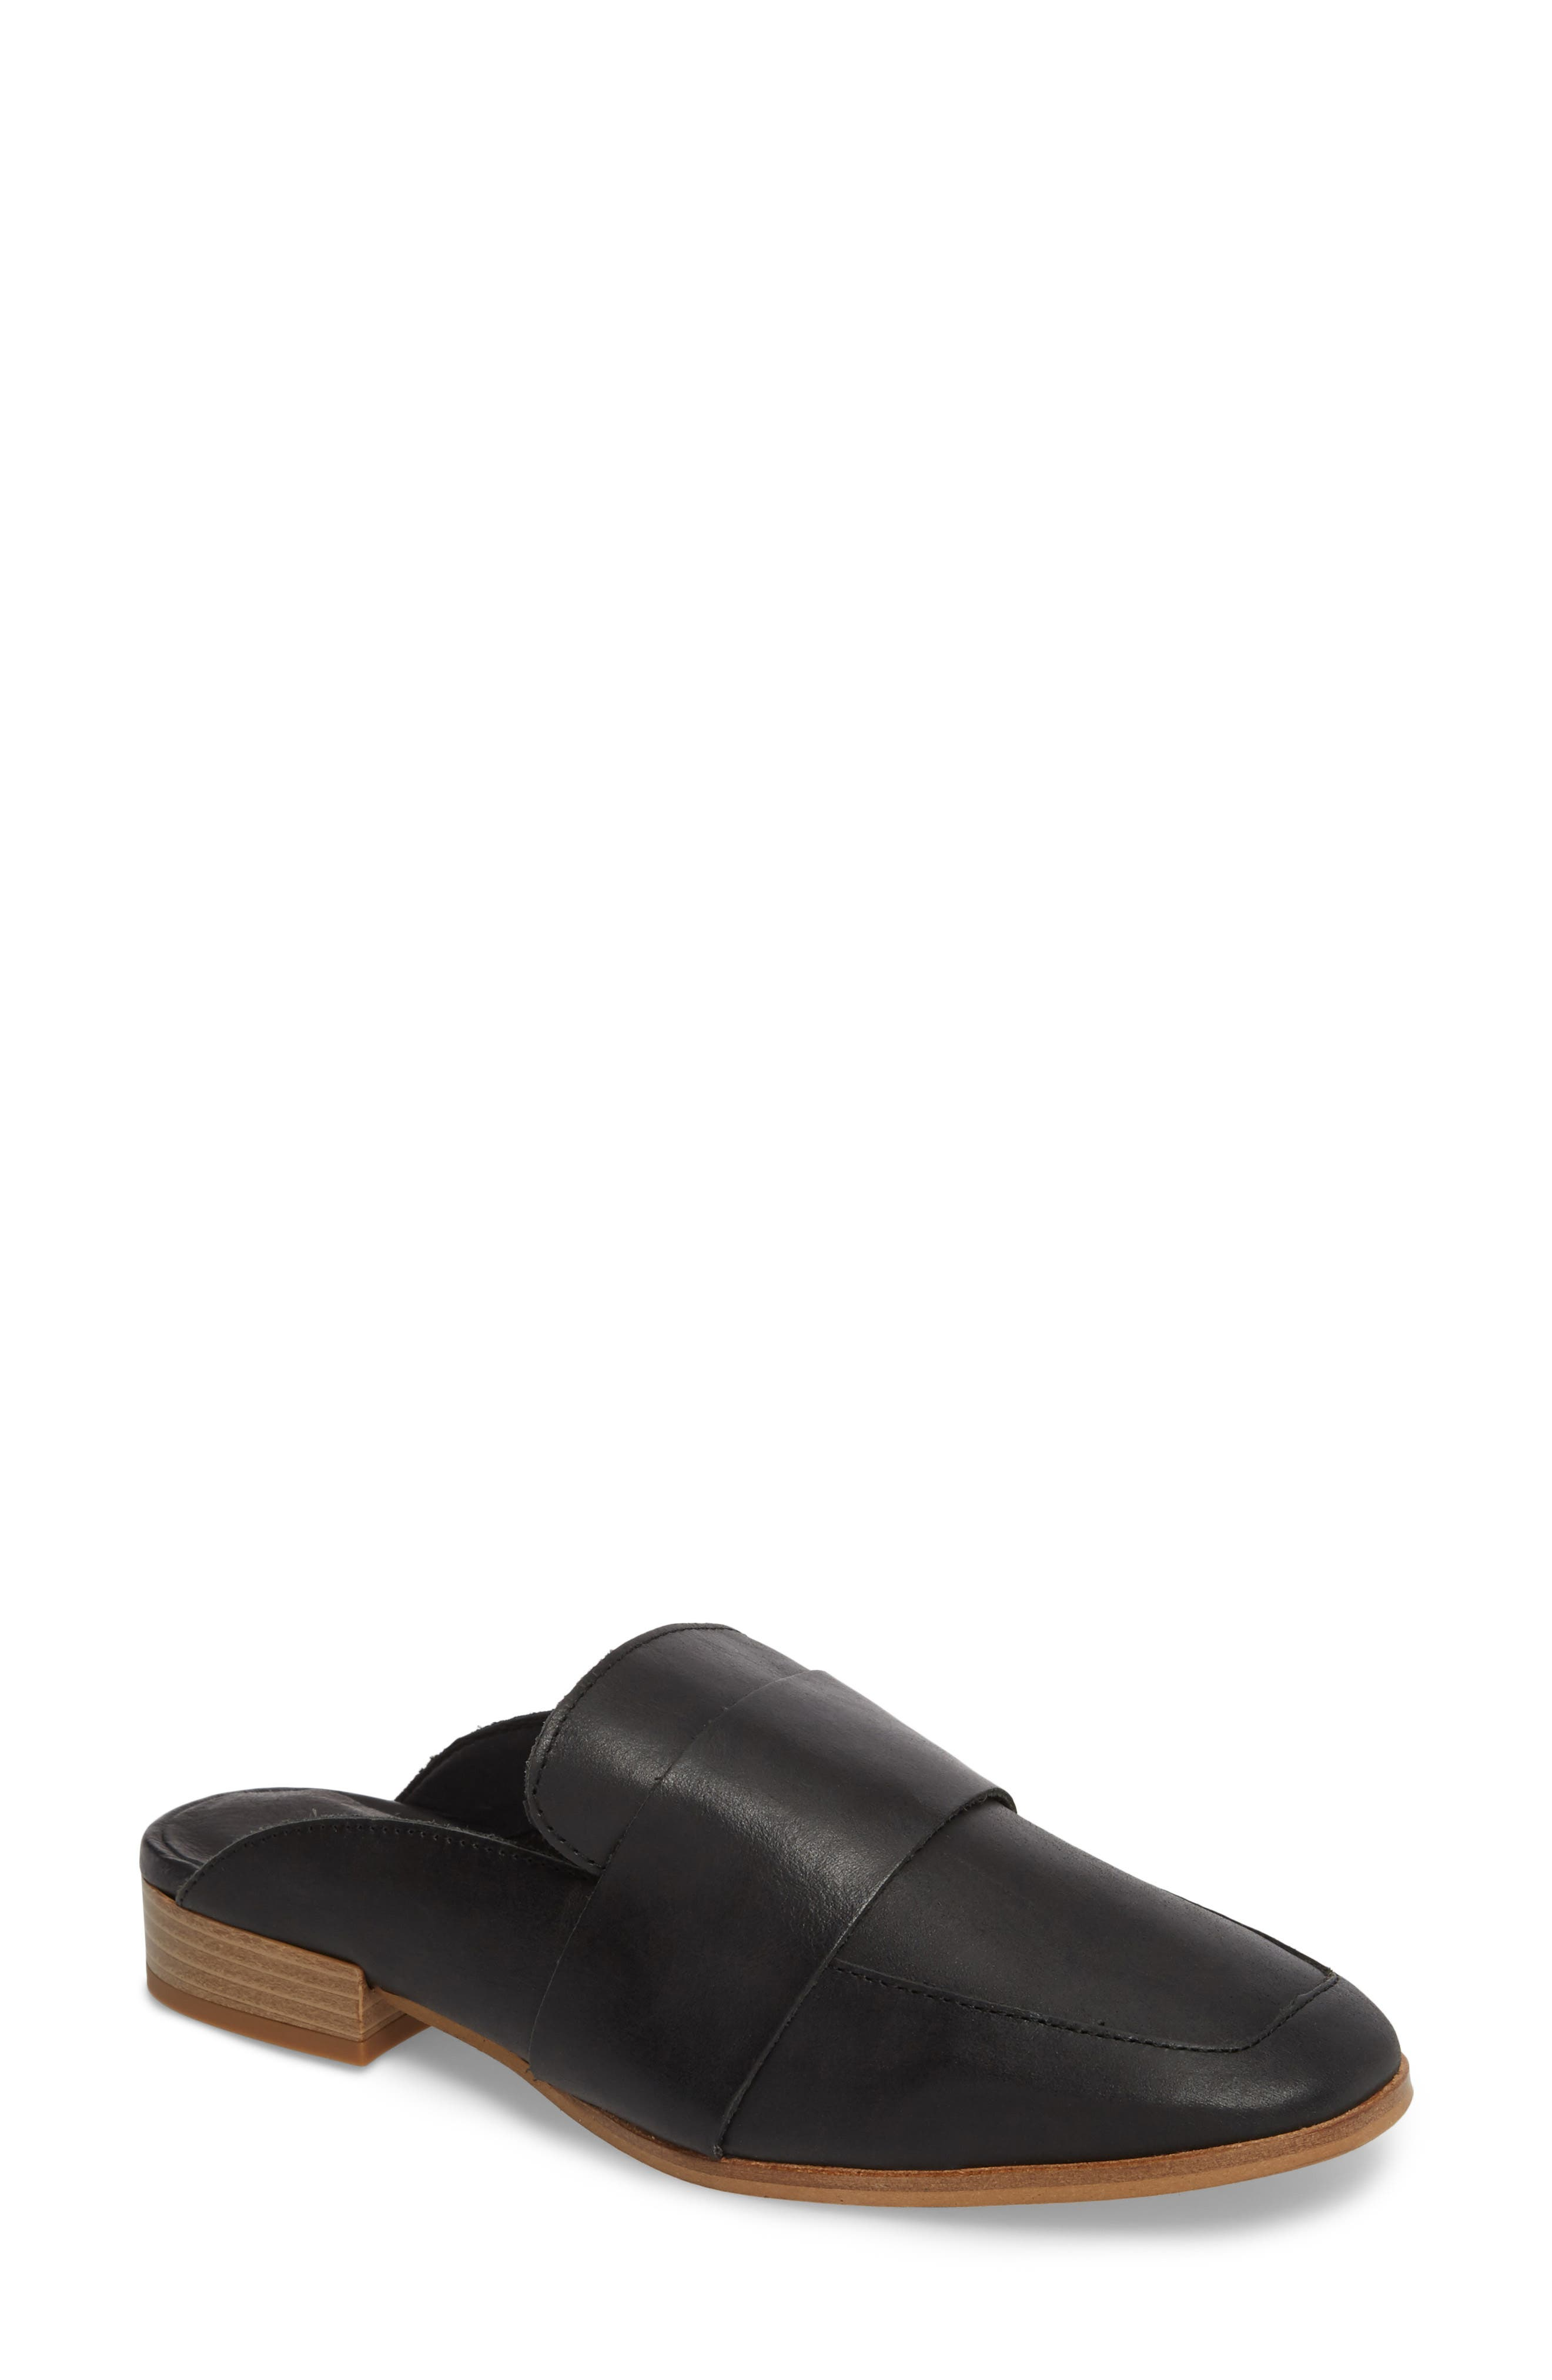 At Ease Loafer Mule,                             Main thumbnail 1, color,                             CARBON LEATHER